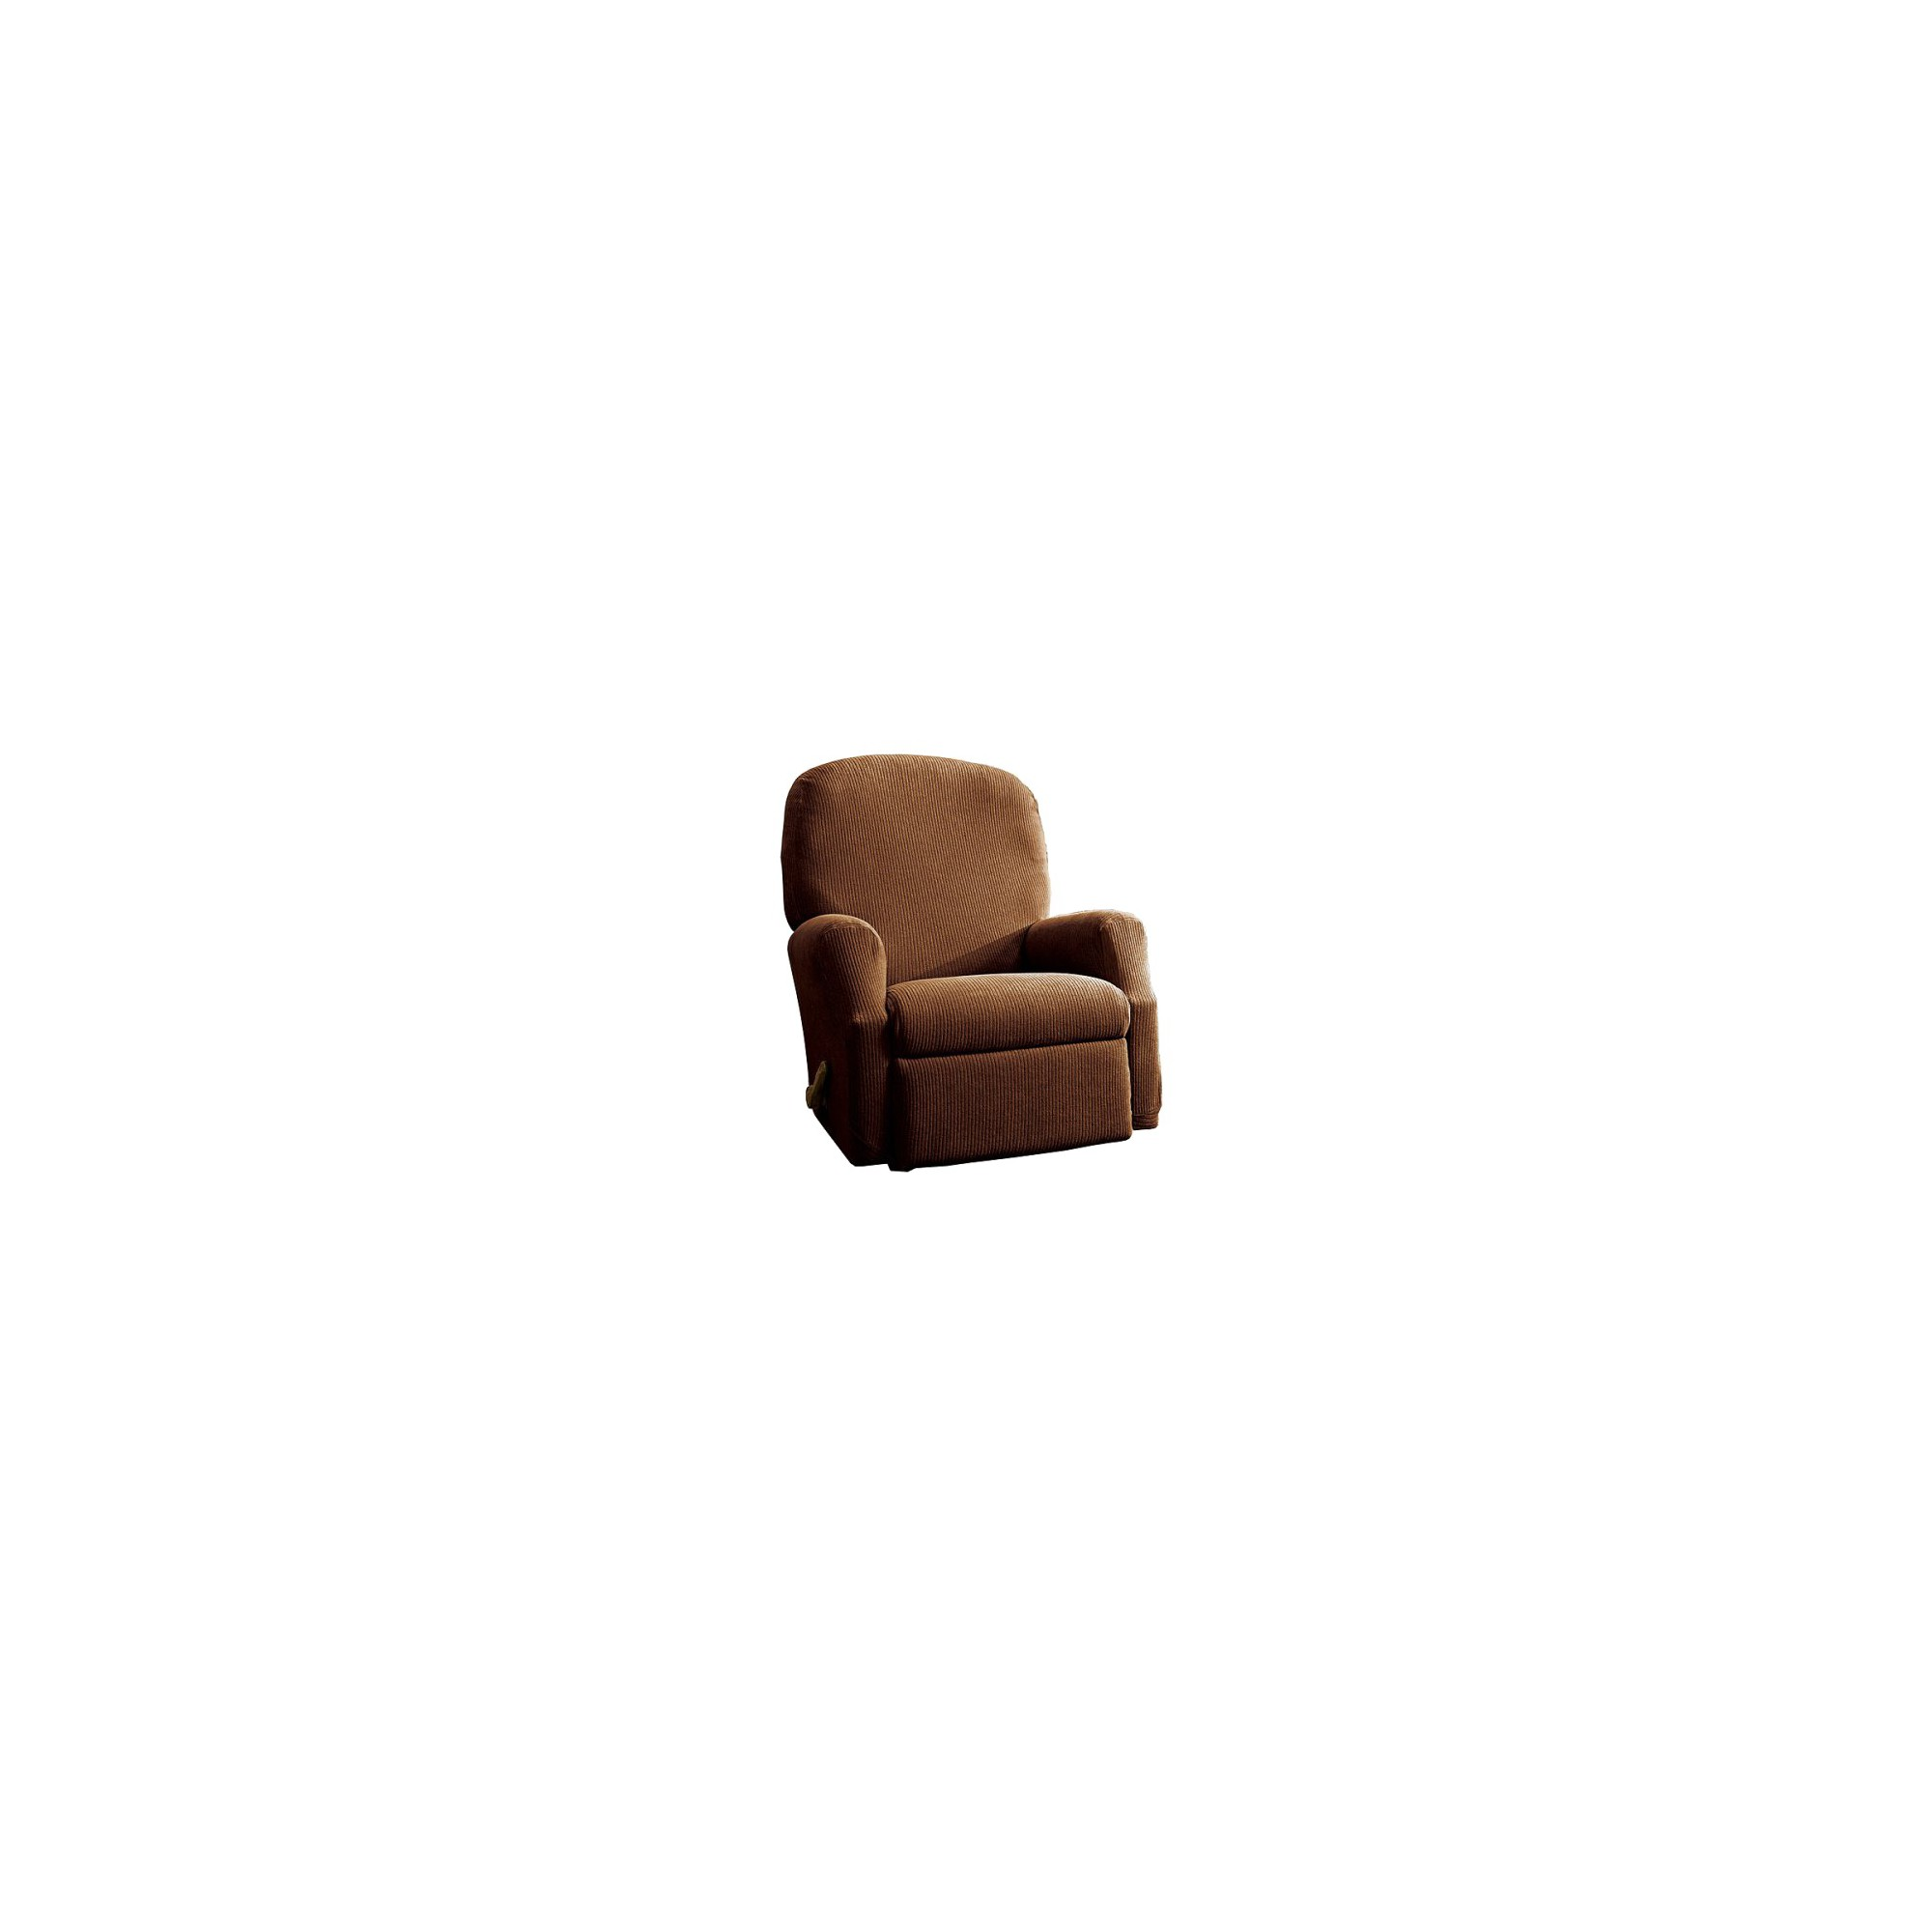 Oar Brown Stretch Rib Recliner Slipcover - Sure Fit